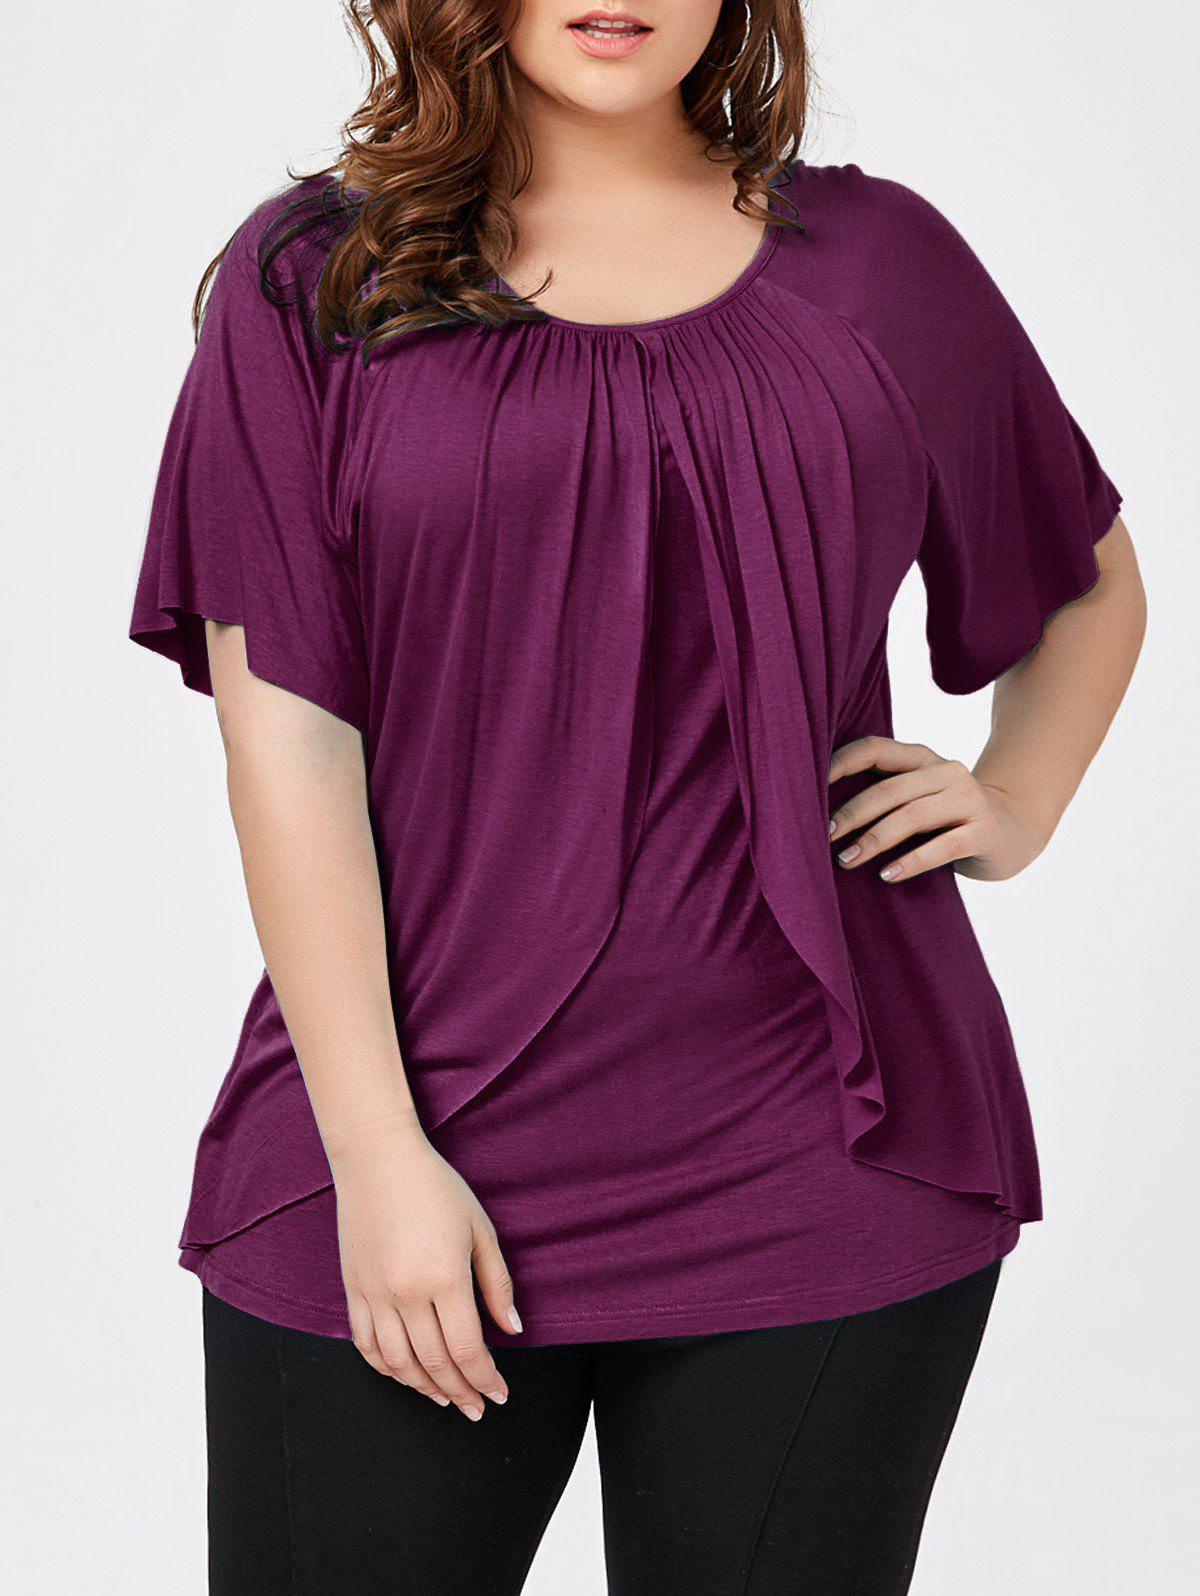 dca7116b 42% OFF ] 2019 Plus Size Raglan Sleeve Overlay T-shirt | Rosegal.com